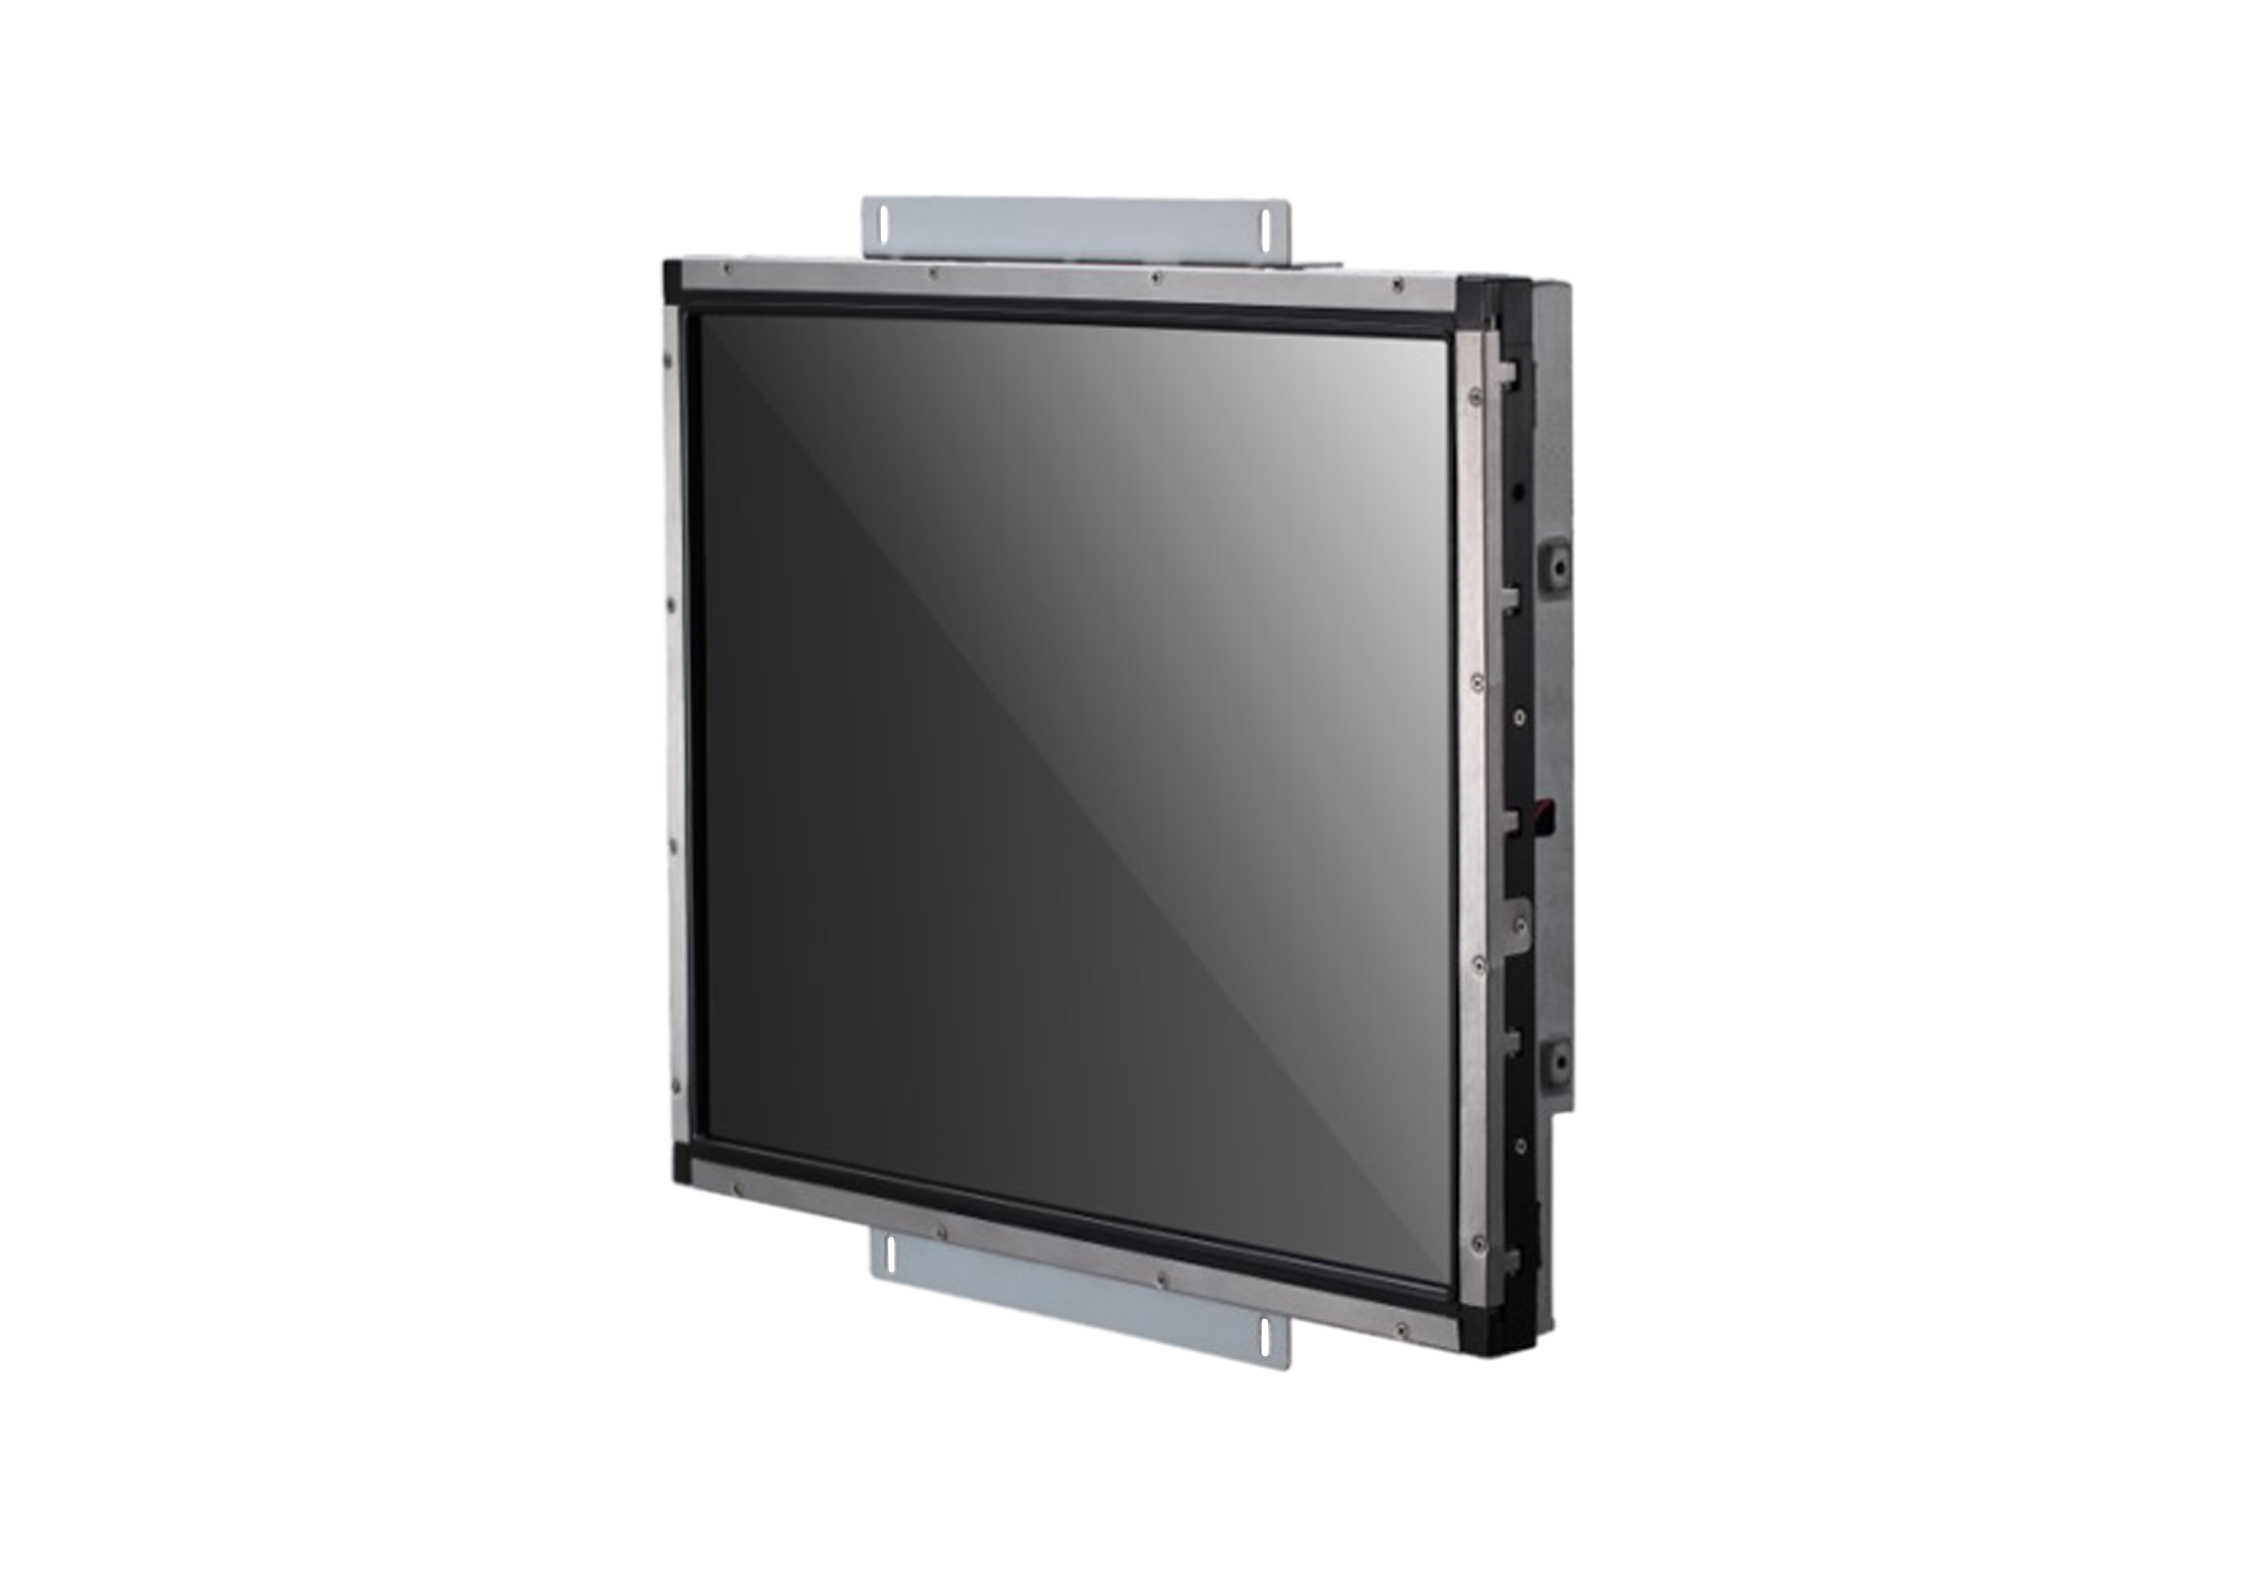 SAW Touch open frame LCD-FULL BYTE TECHNOLOGY HK LIMITED